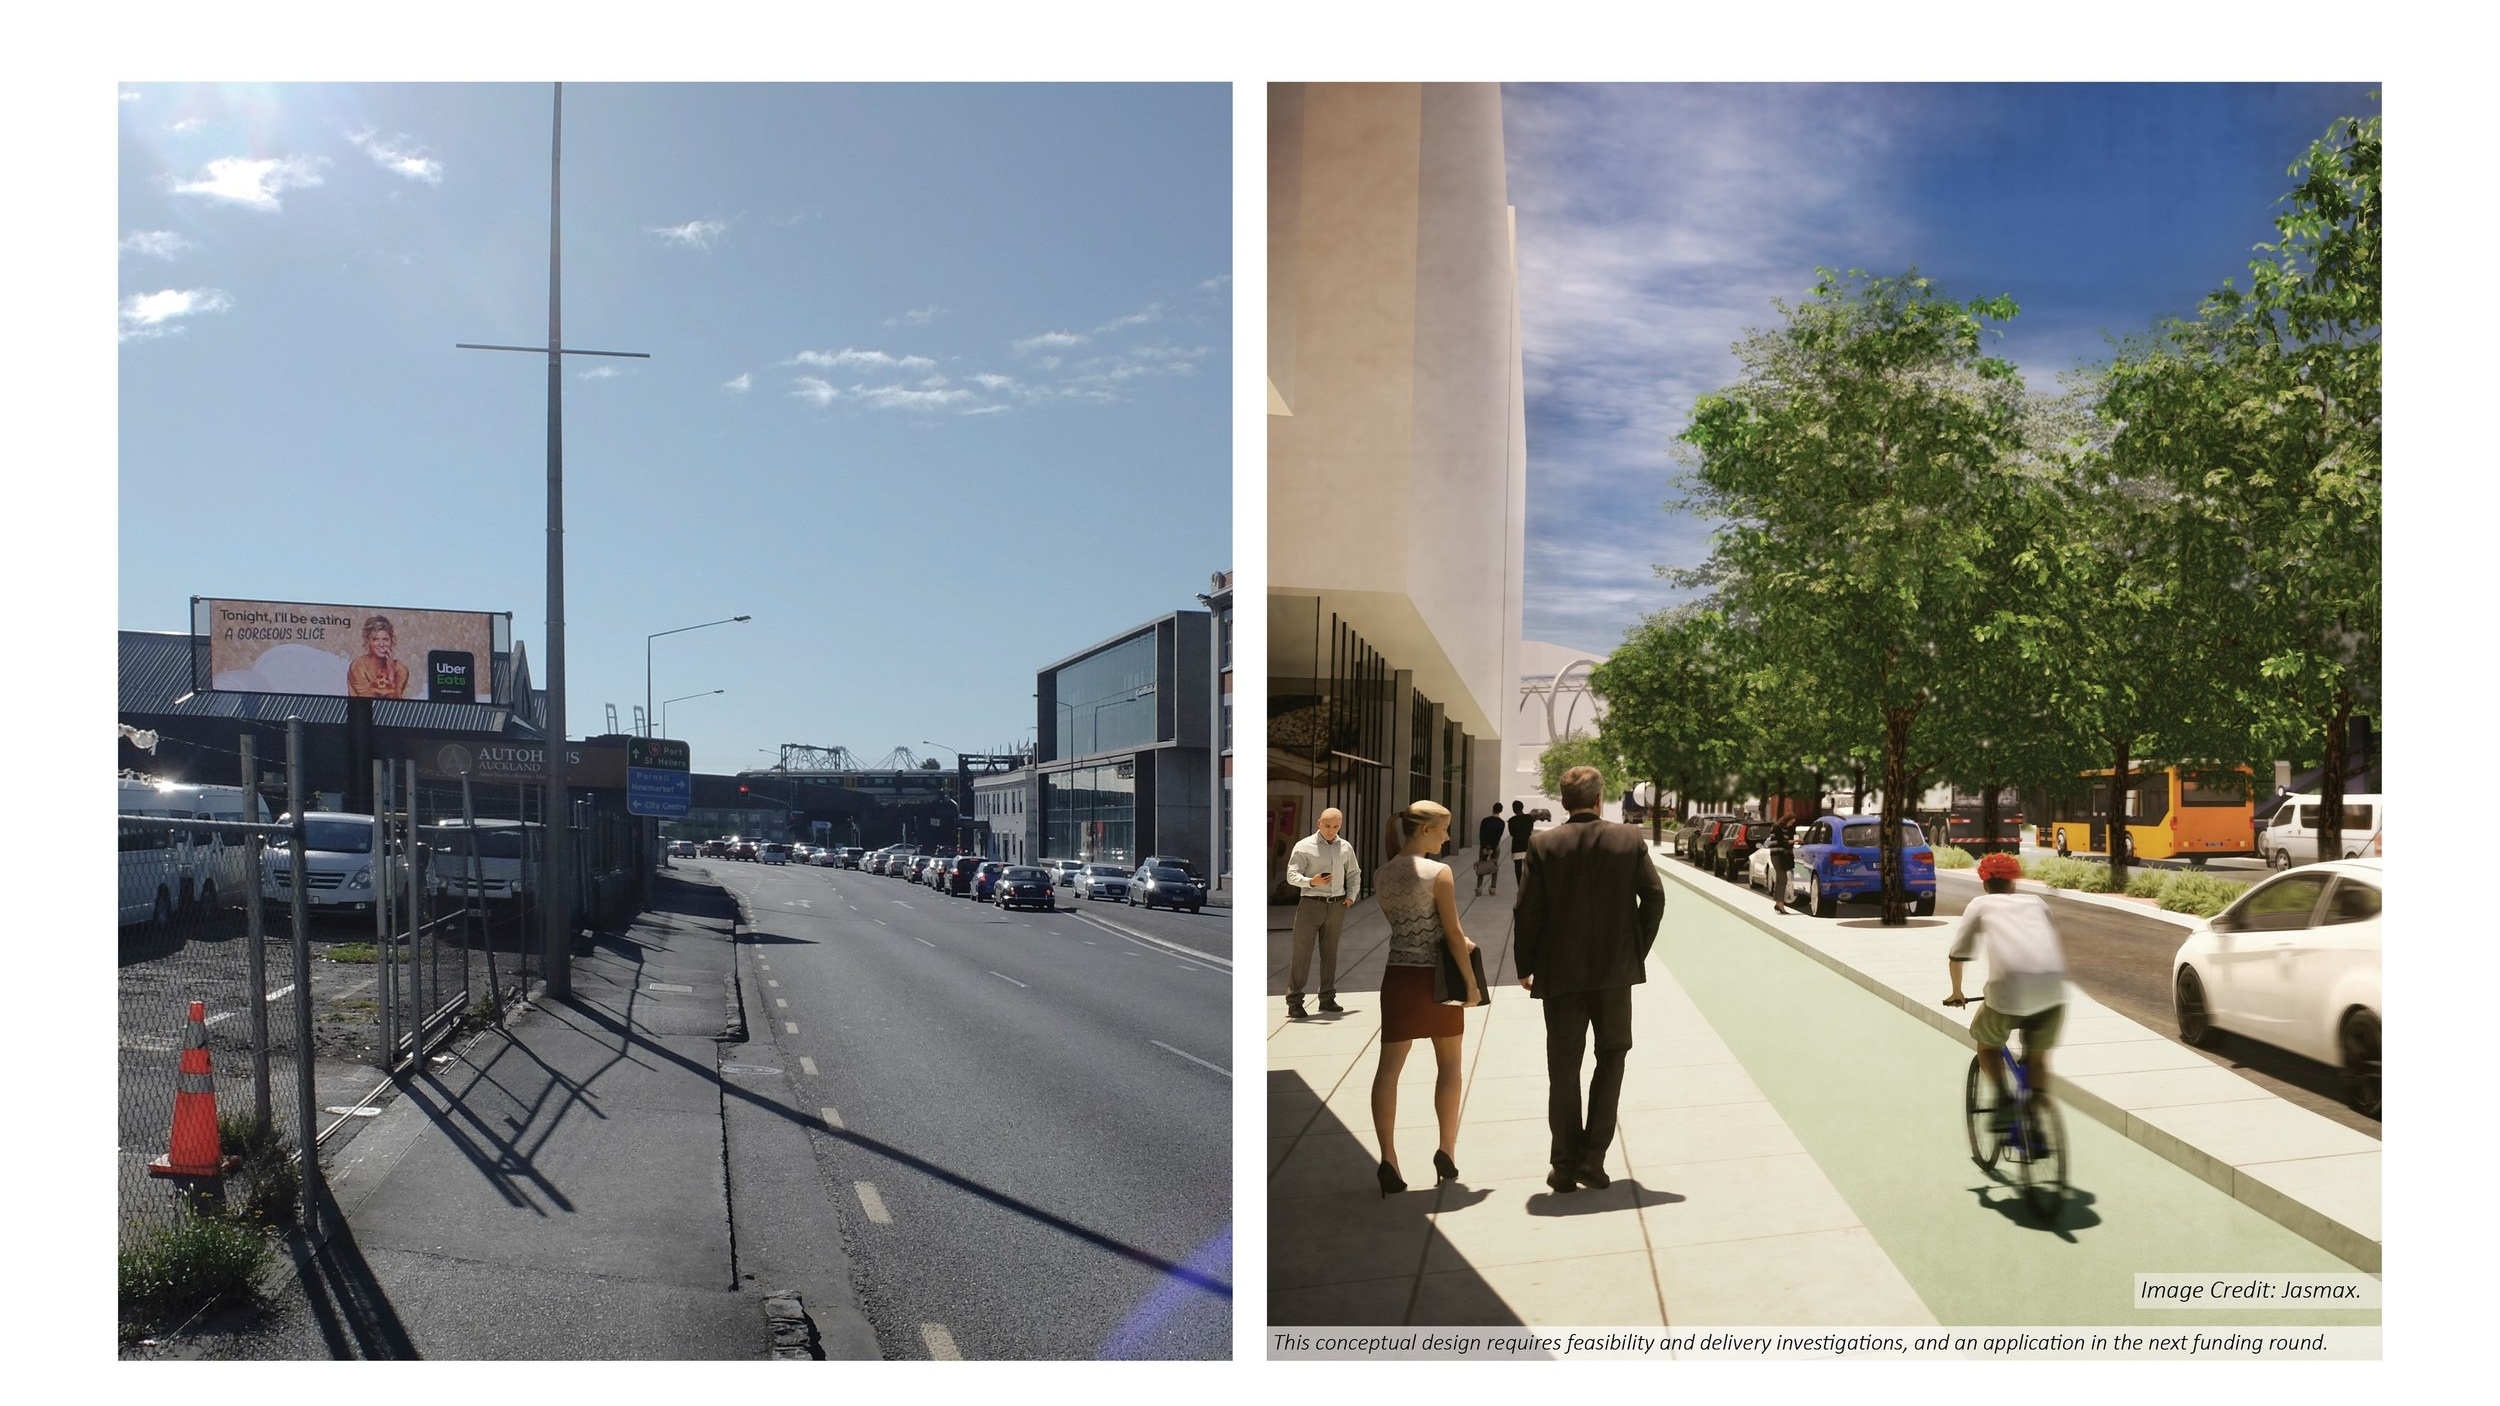 Concept design - before and after view of Grafton area. Urban regeneration could create a new liveable district and unite Parnell with the city centre and waterfront. Image credit: Jasmax